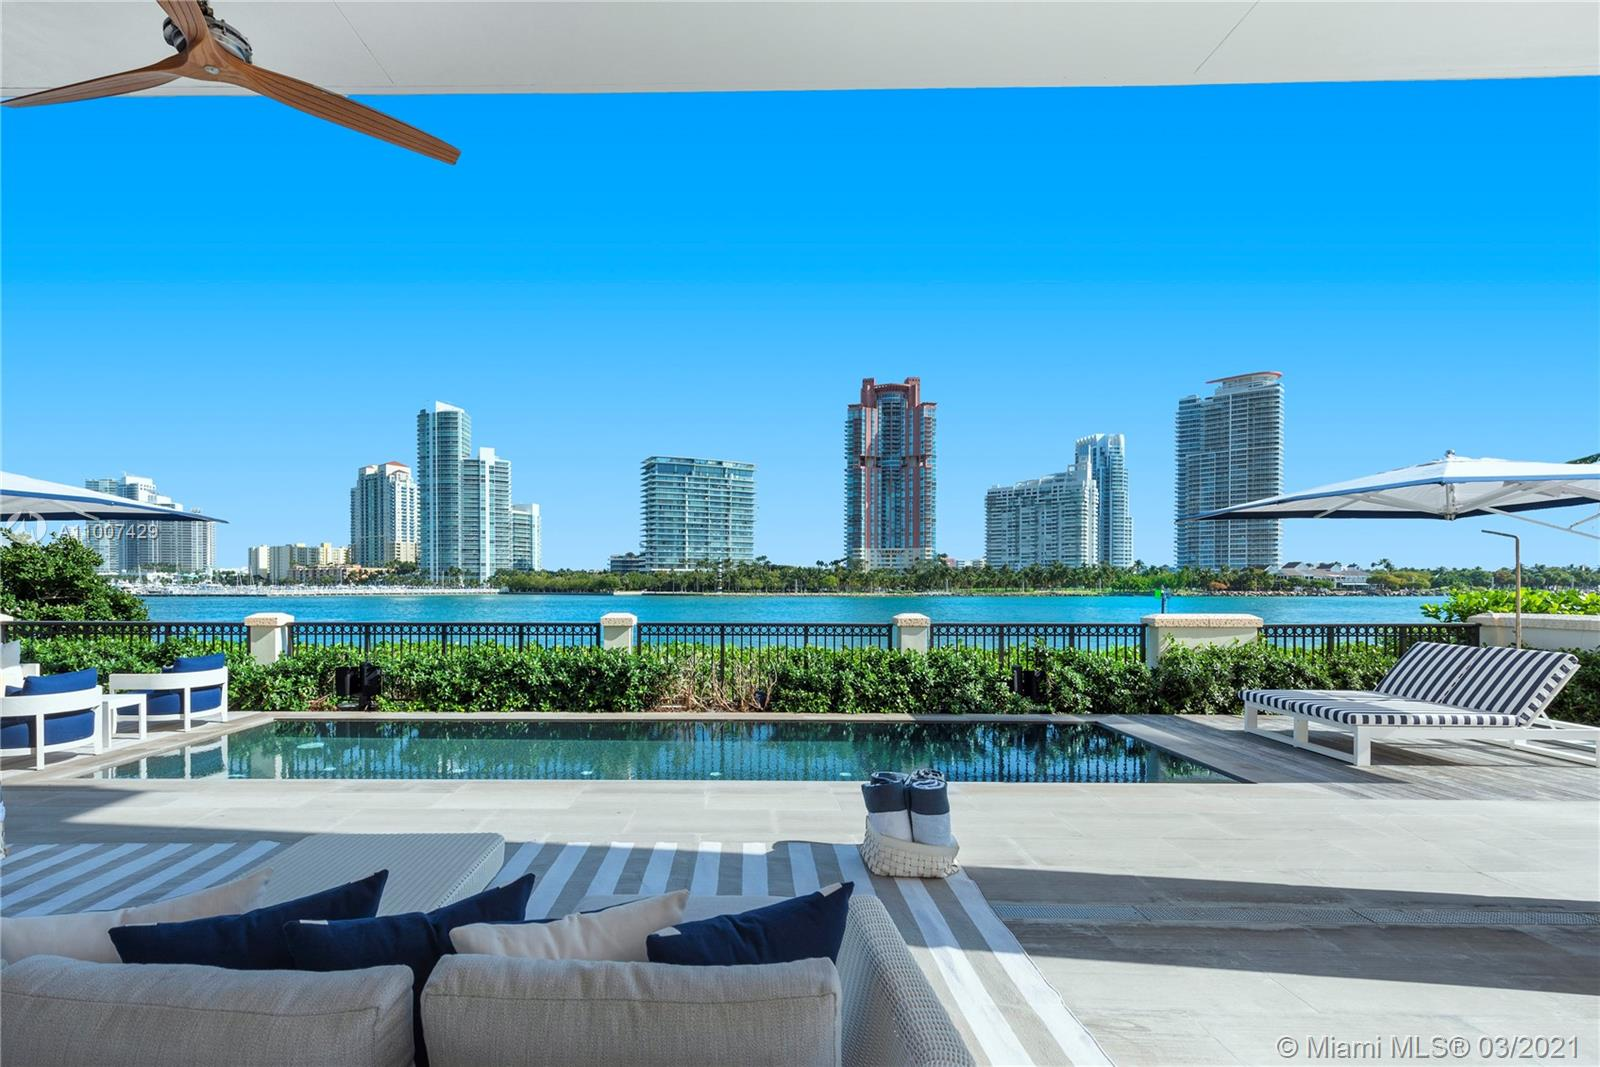 6800 Fisher Island Dr, Unit #6812 Luxury Real Estate